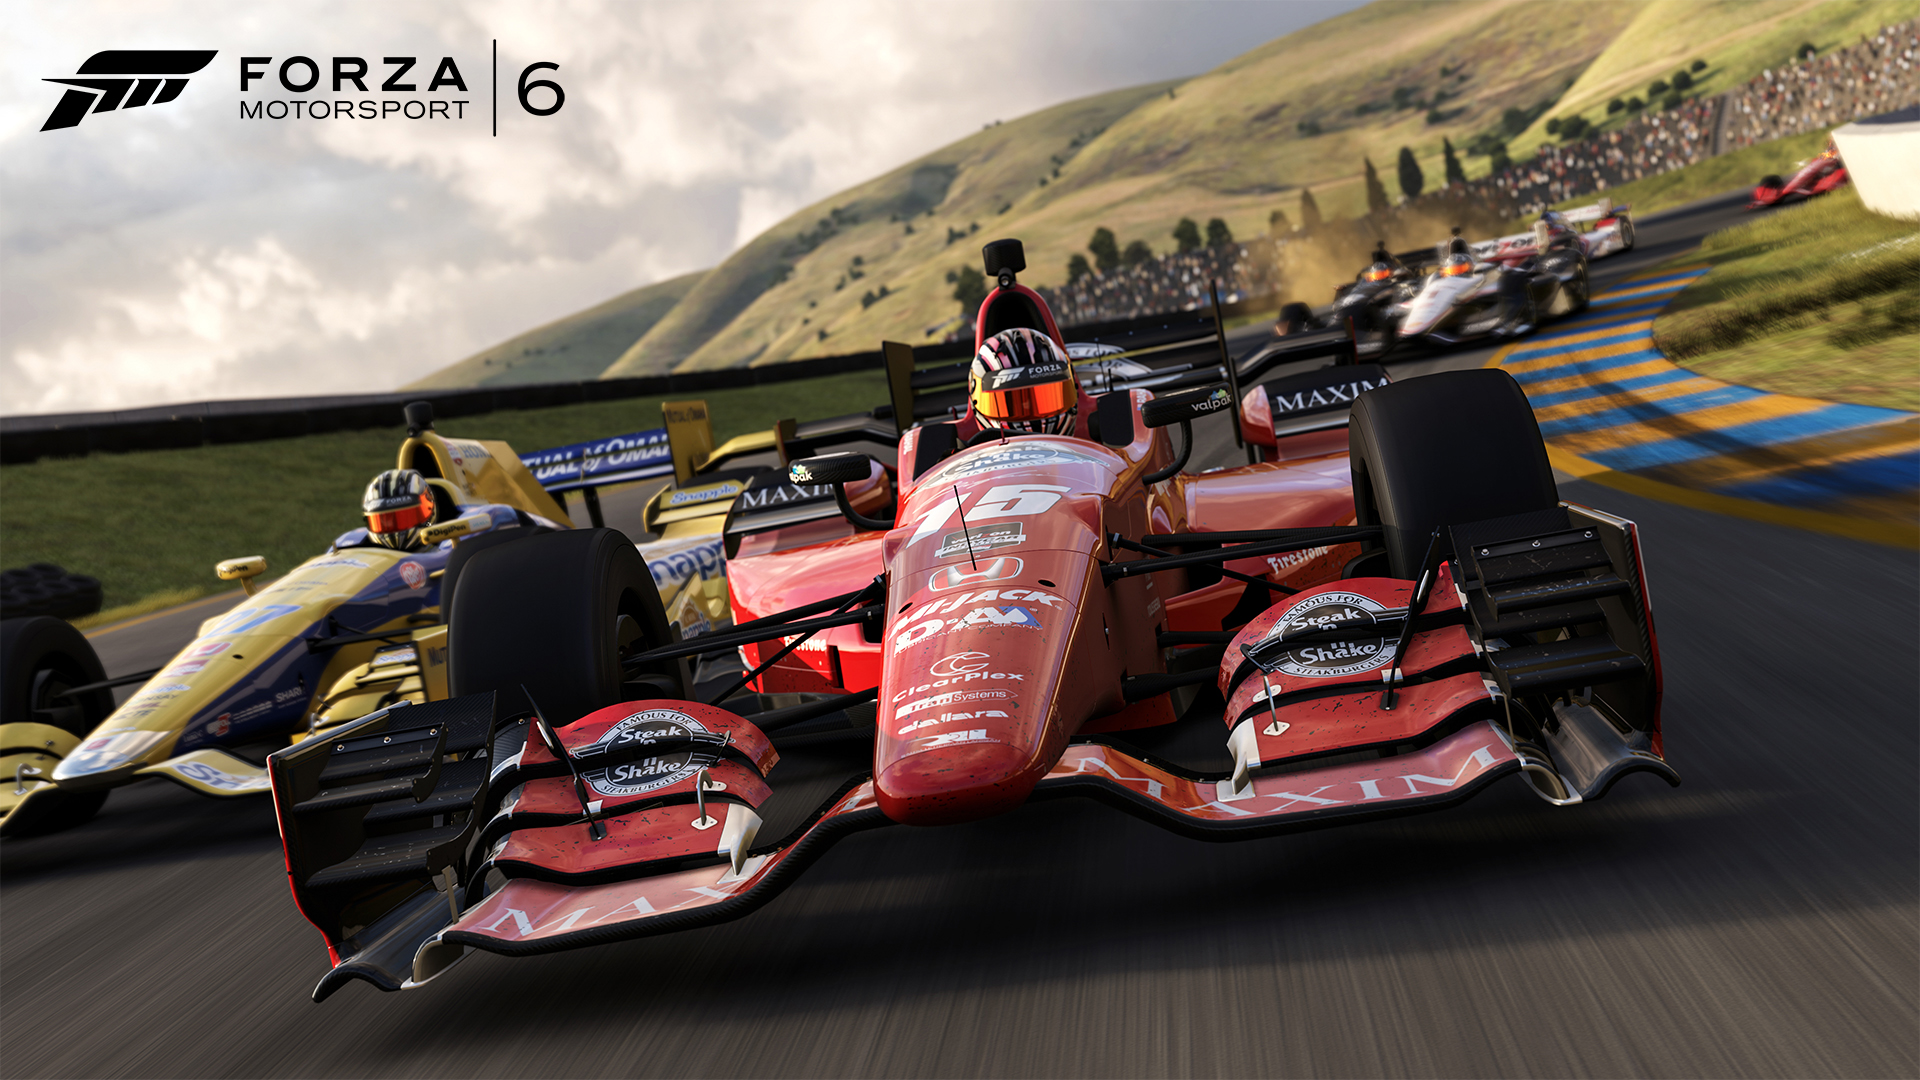 forza motorsport the forza 6 demo is here